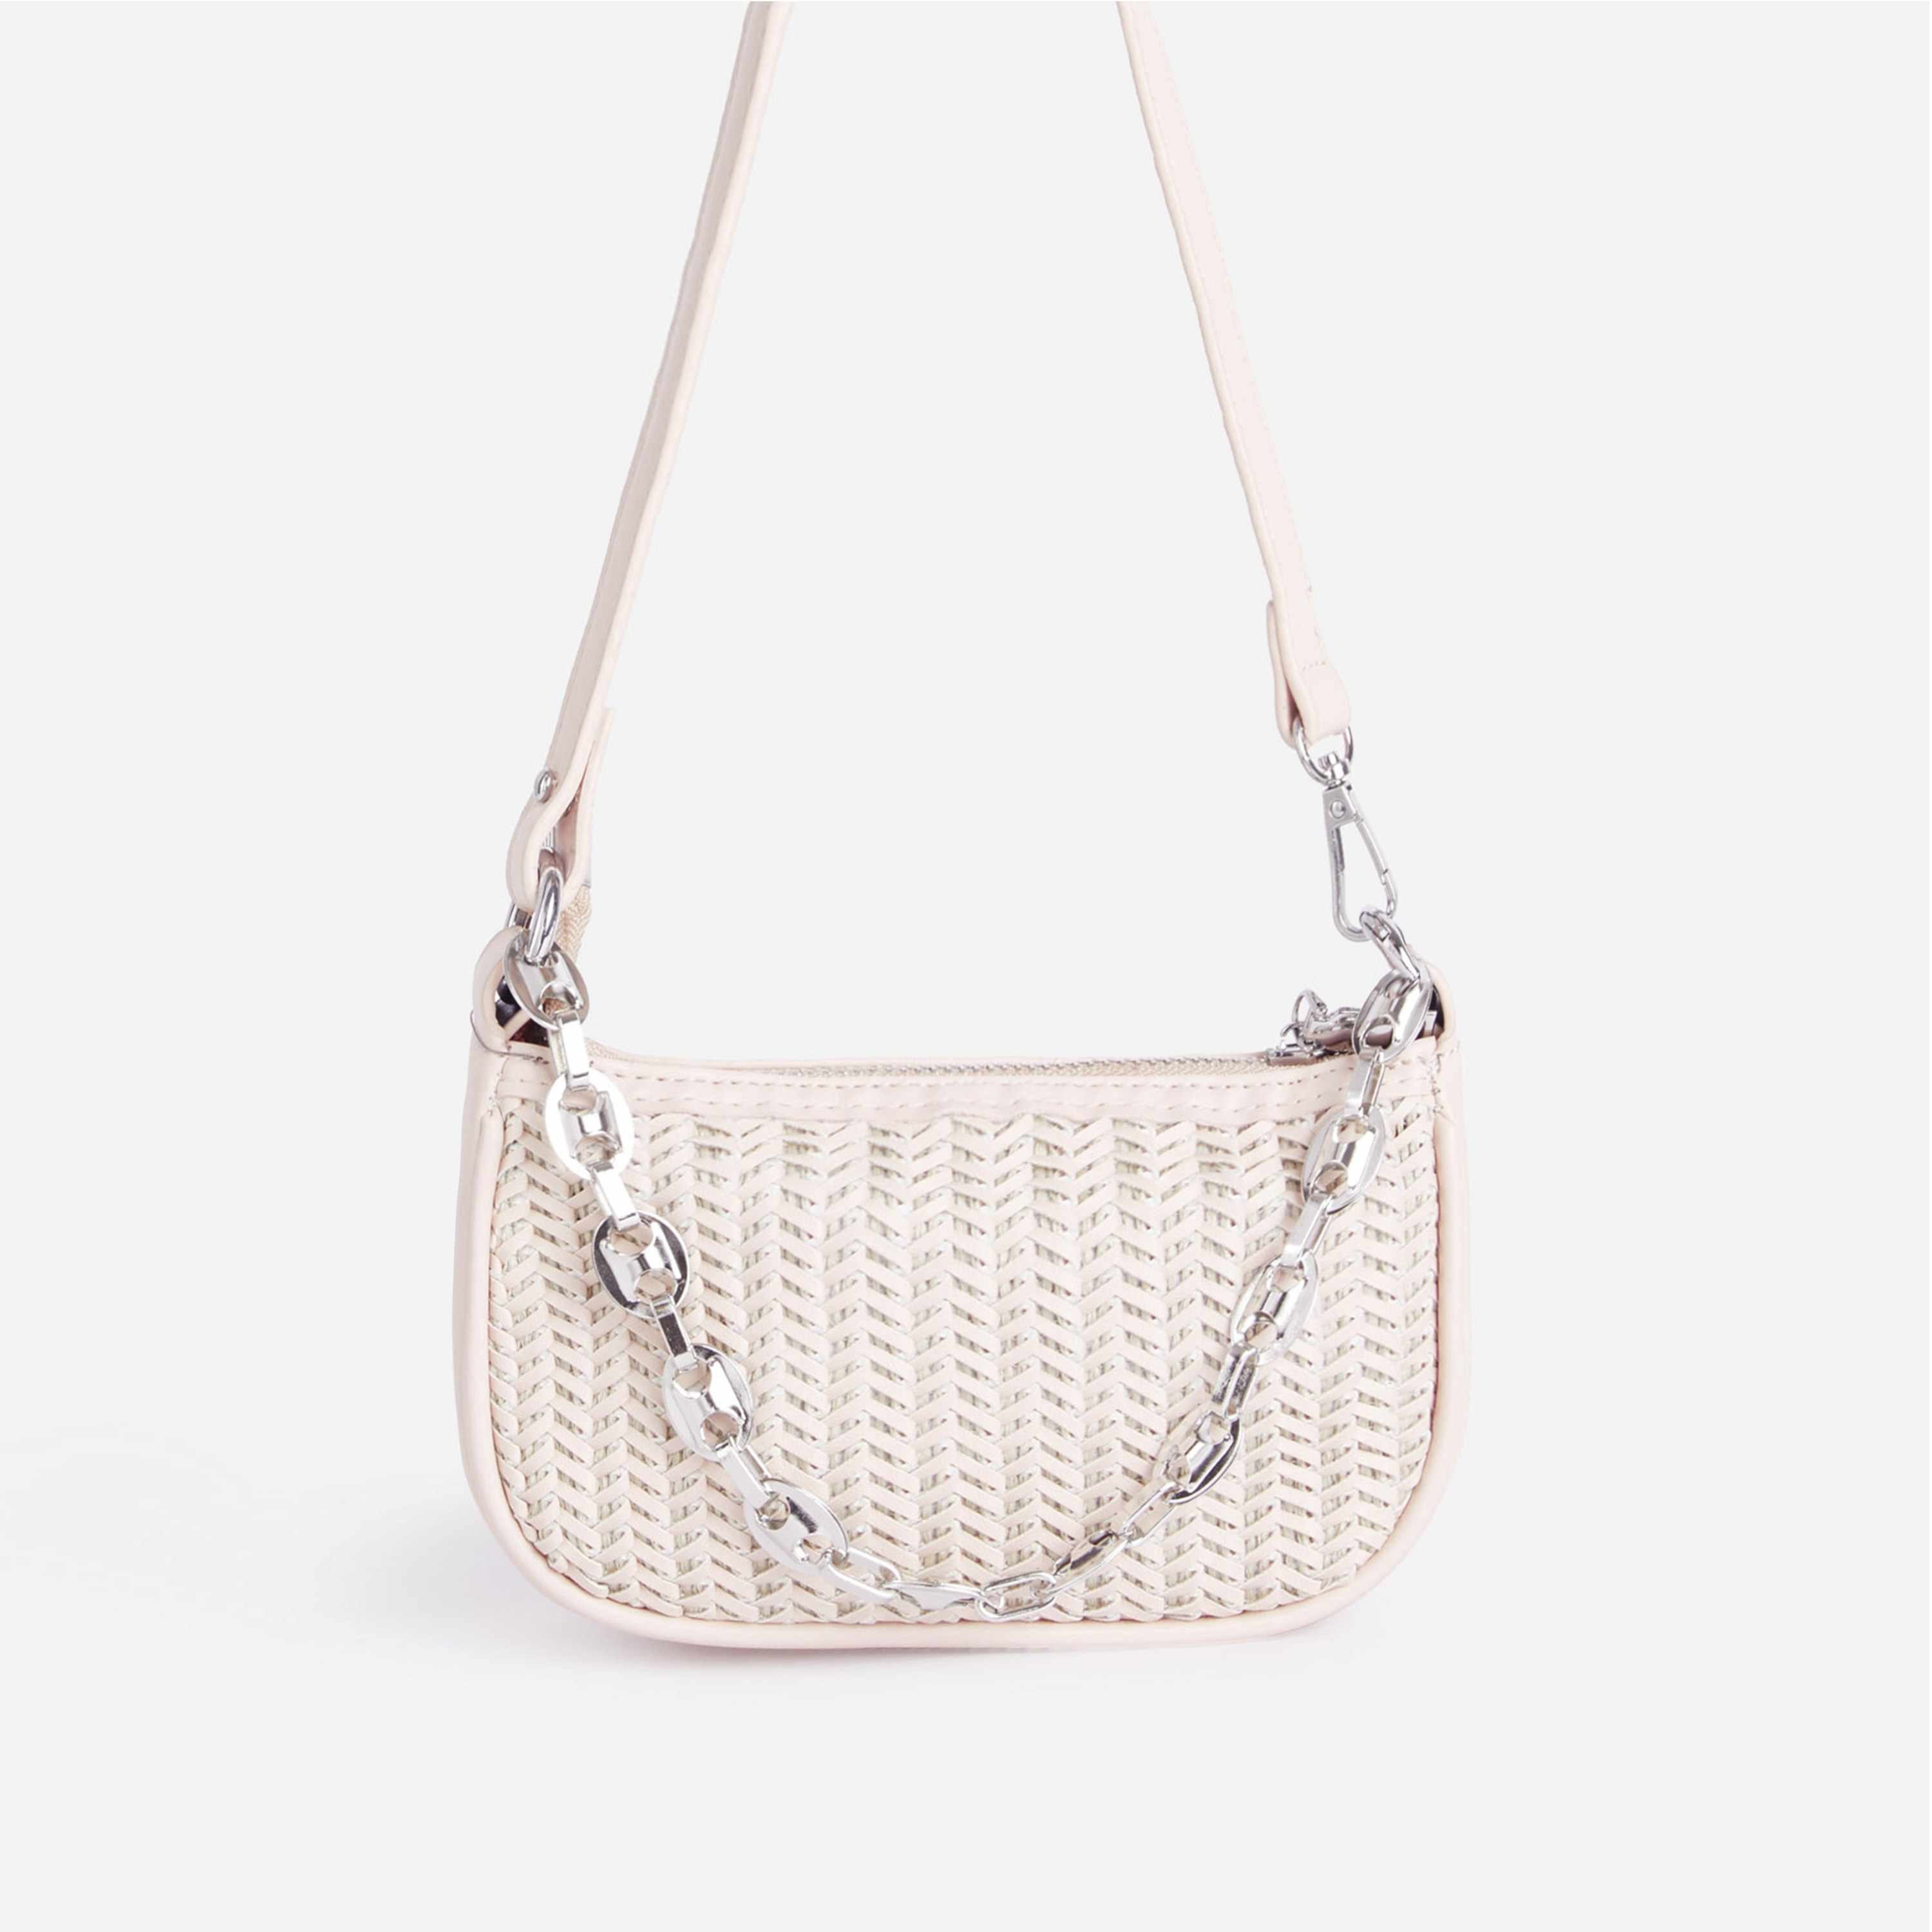 Rudy Chain Detail Woven Shoulder Bag In White Faux Leather